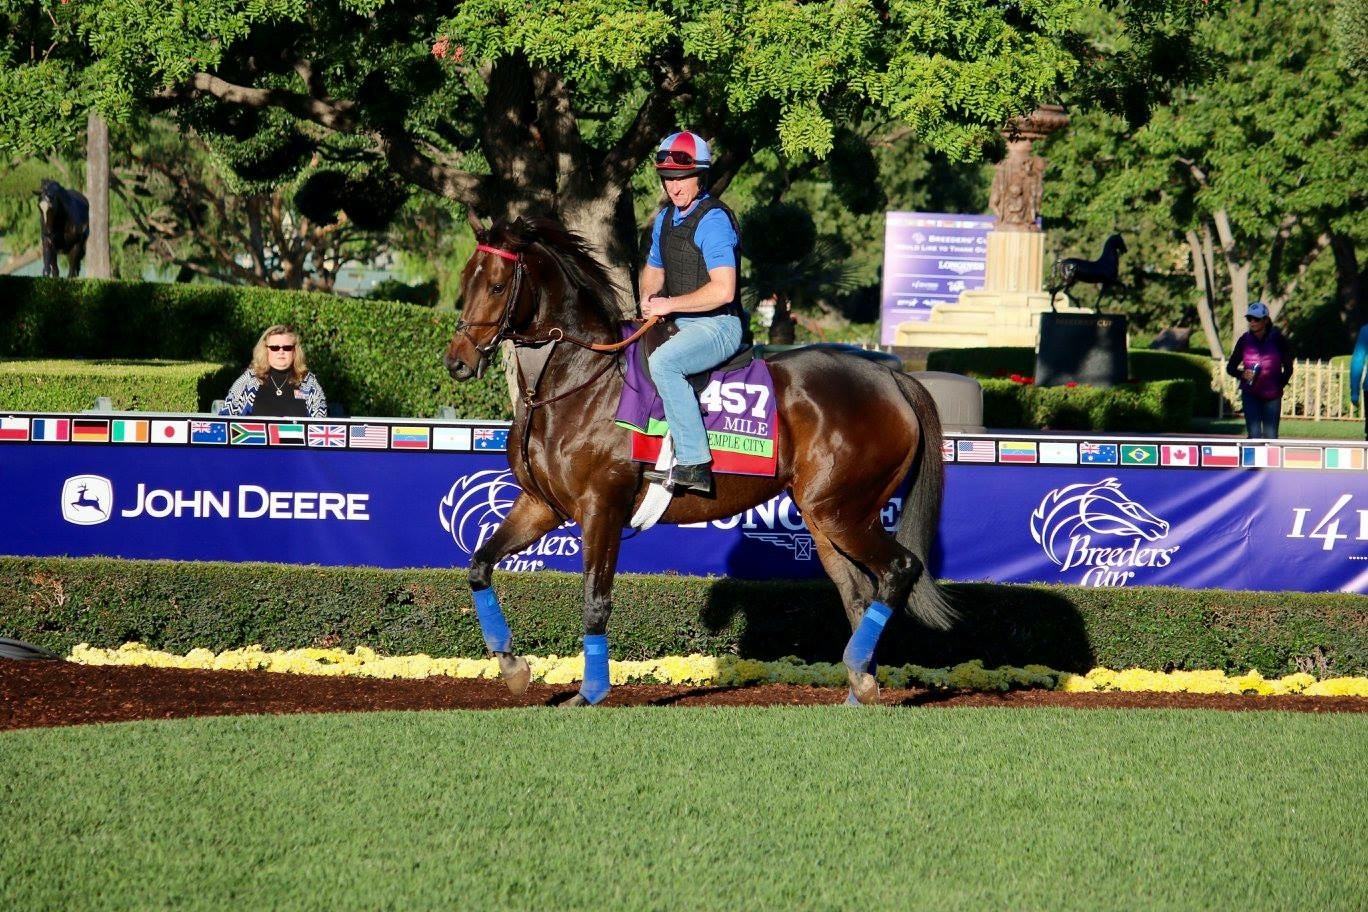 Miss Temple City Takes On The Breeders Cup Sagamore Racing